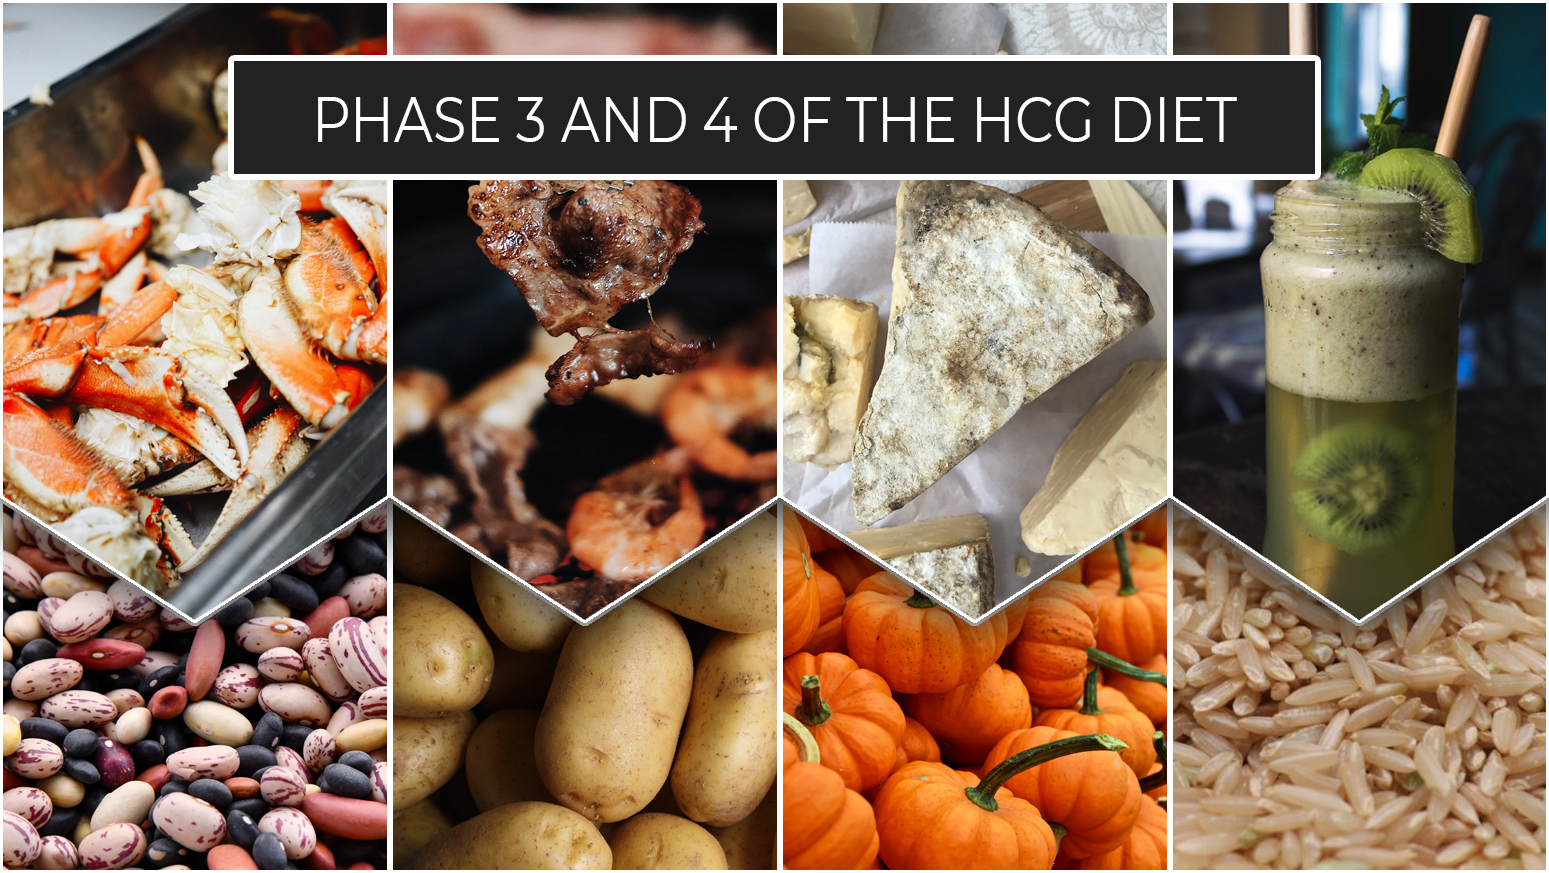 PHASE 3 AND 4 OF THE HCG DIET